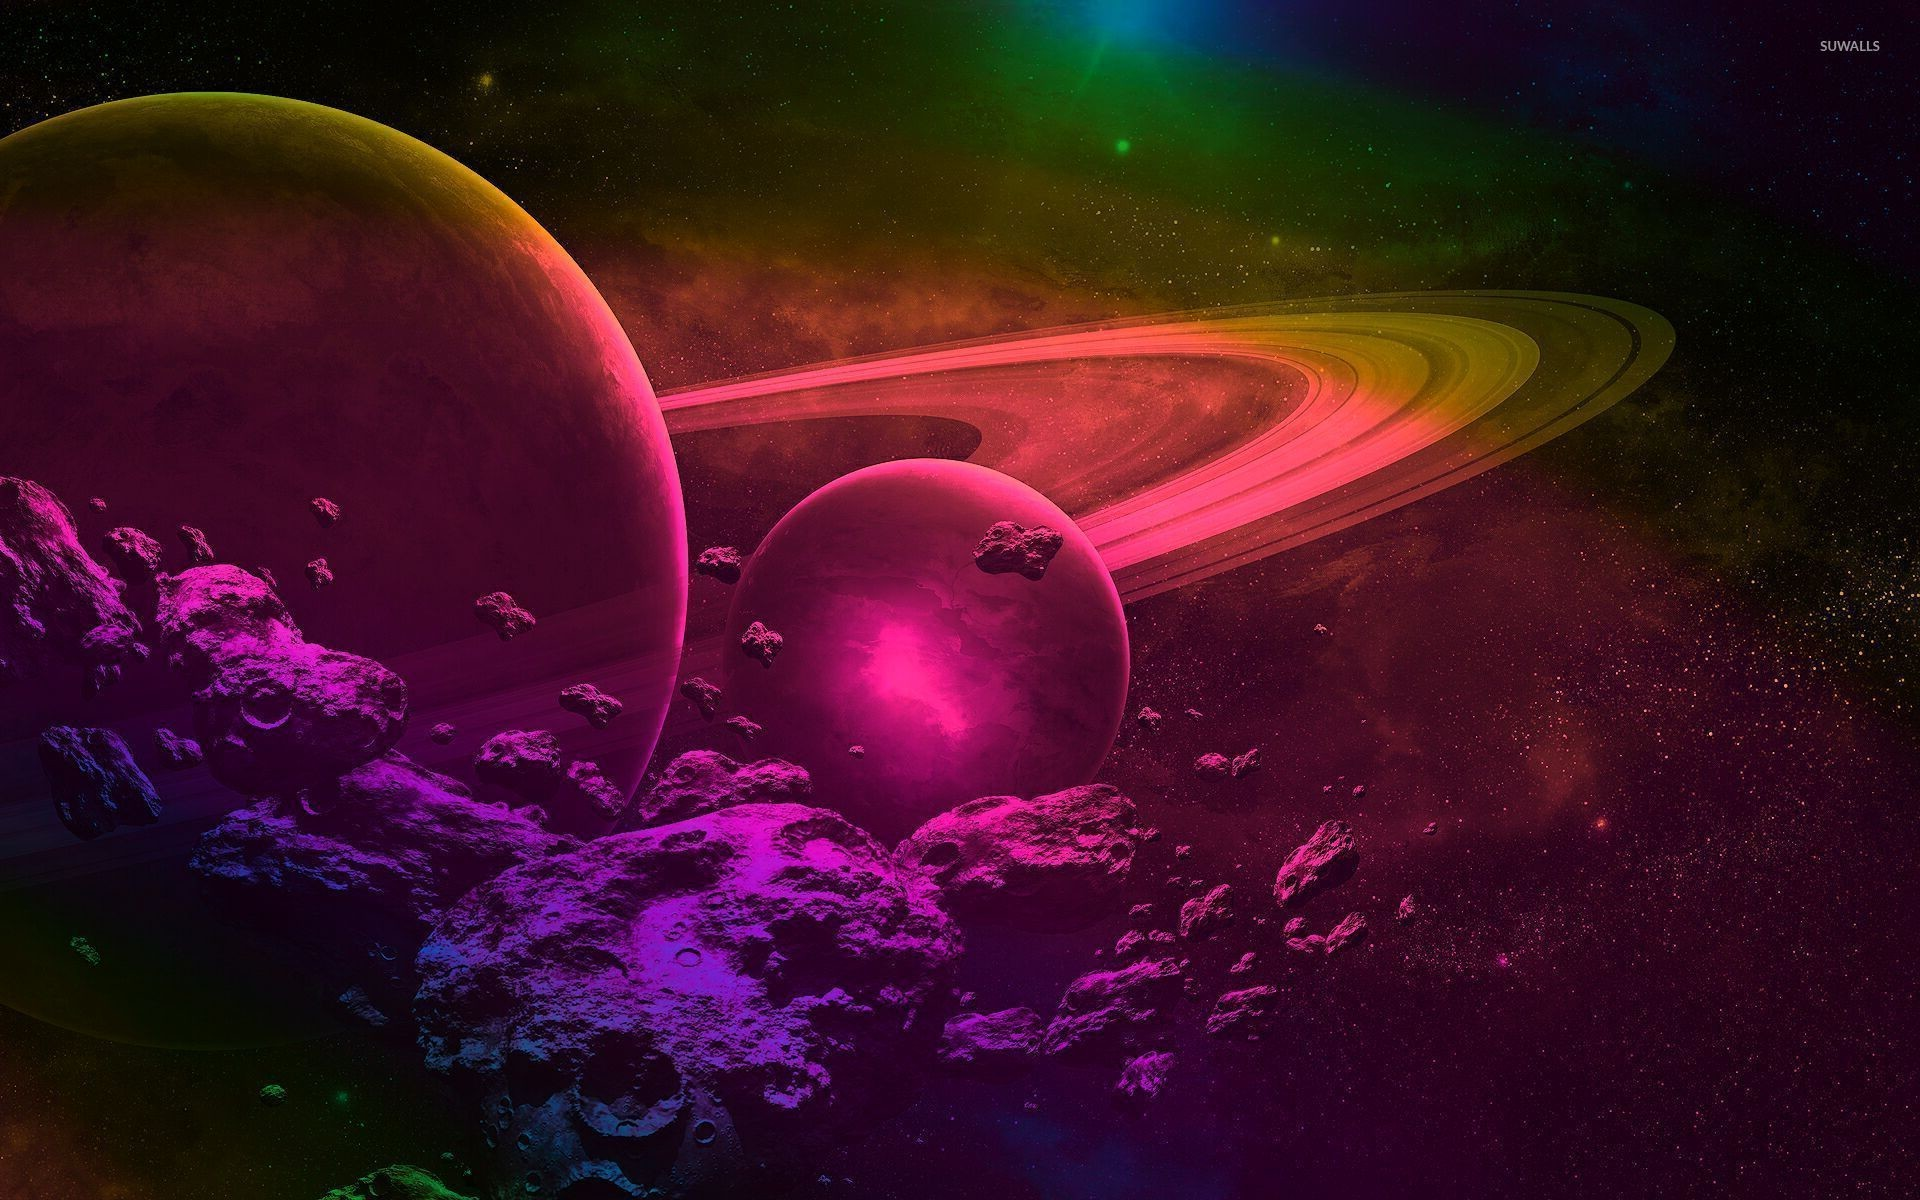 Pink galaxy wallpaper 73 images - Space wallpaper 1920x1200 ...